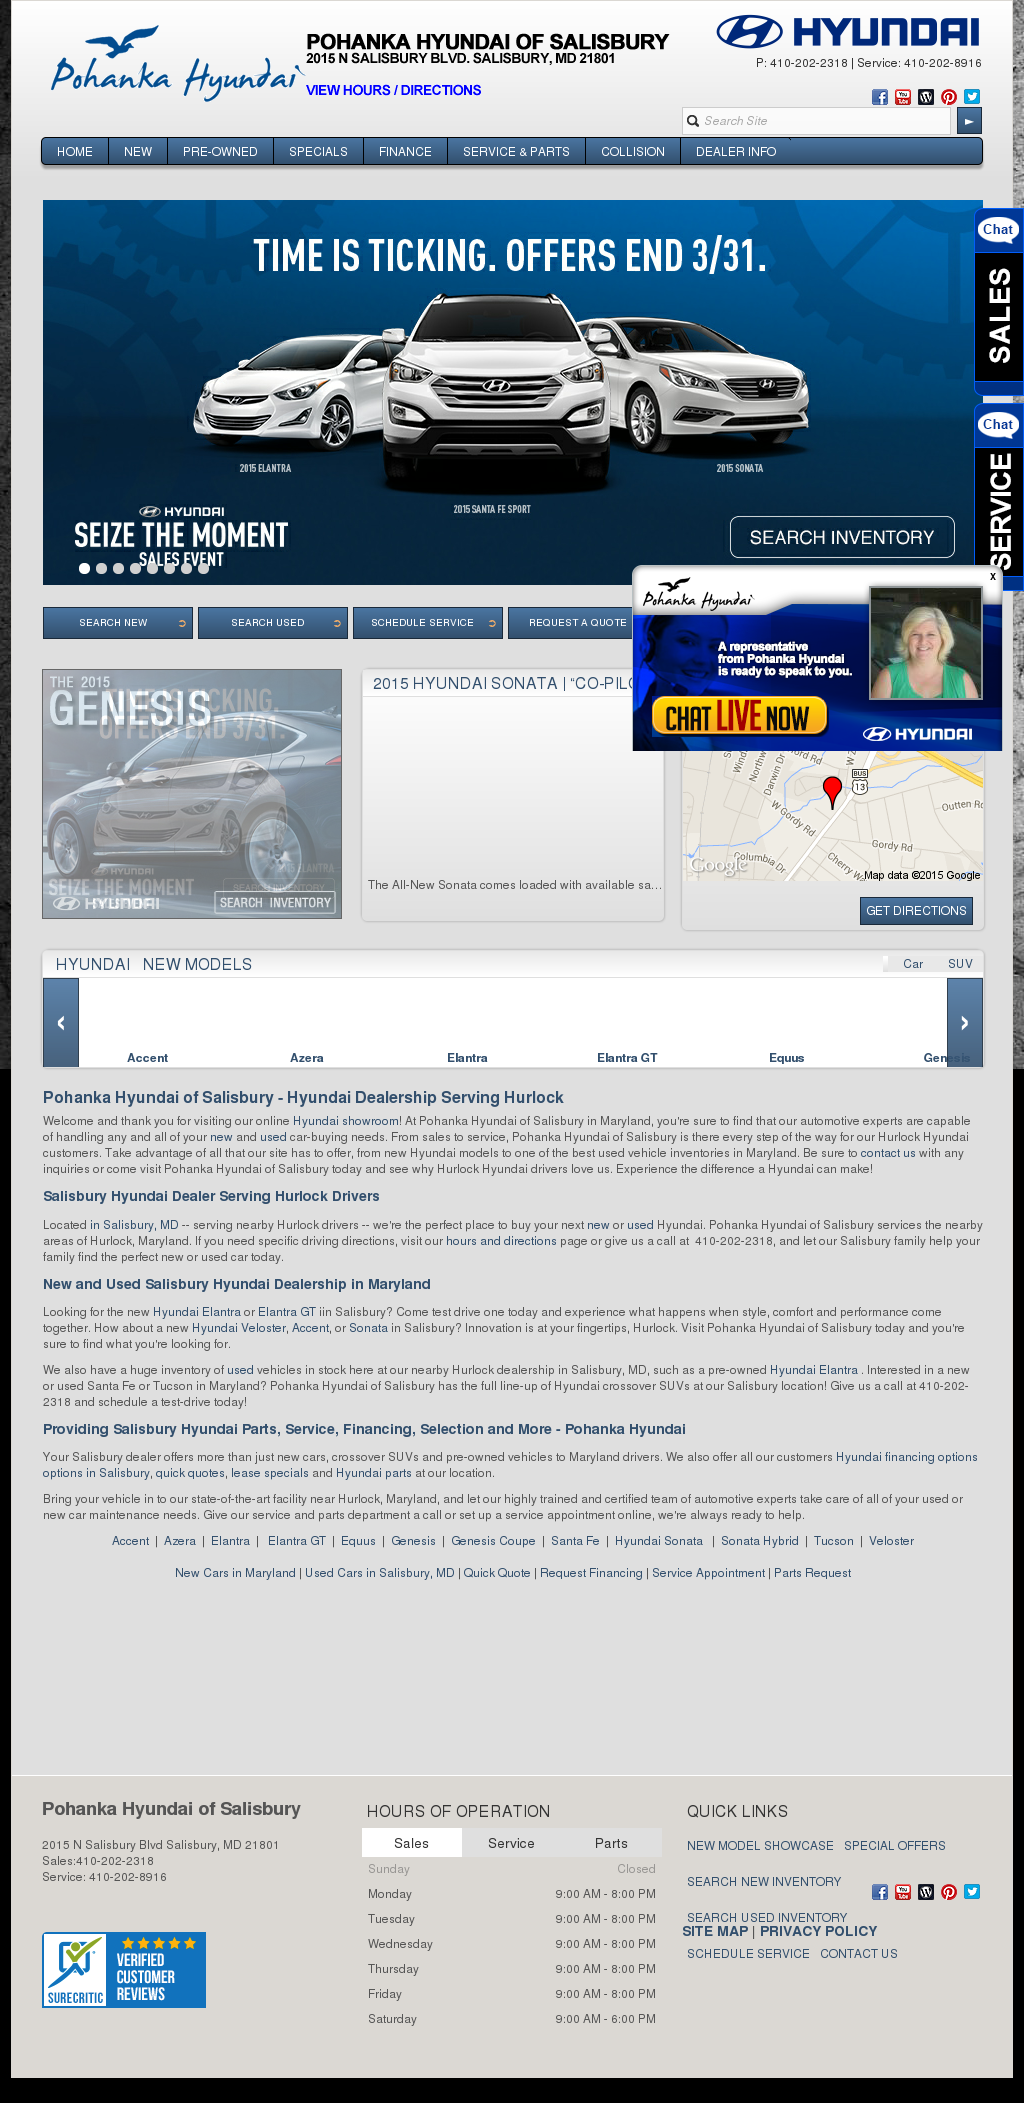 Pohanka Hyundai Of Salisbury Competitors, Revenue And Employees   Owler  Company Profile